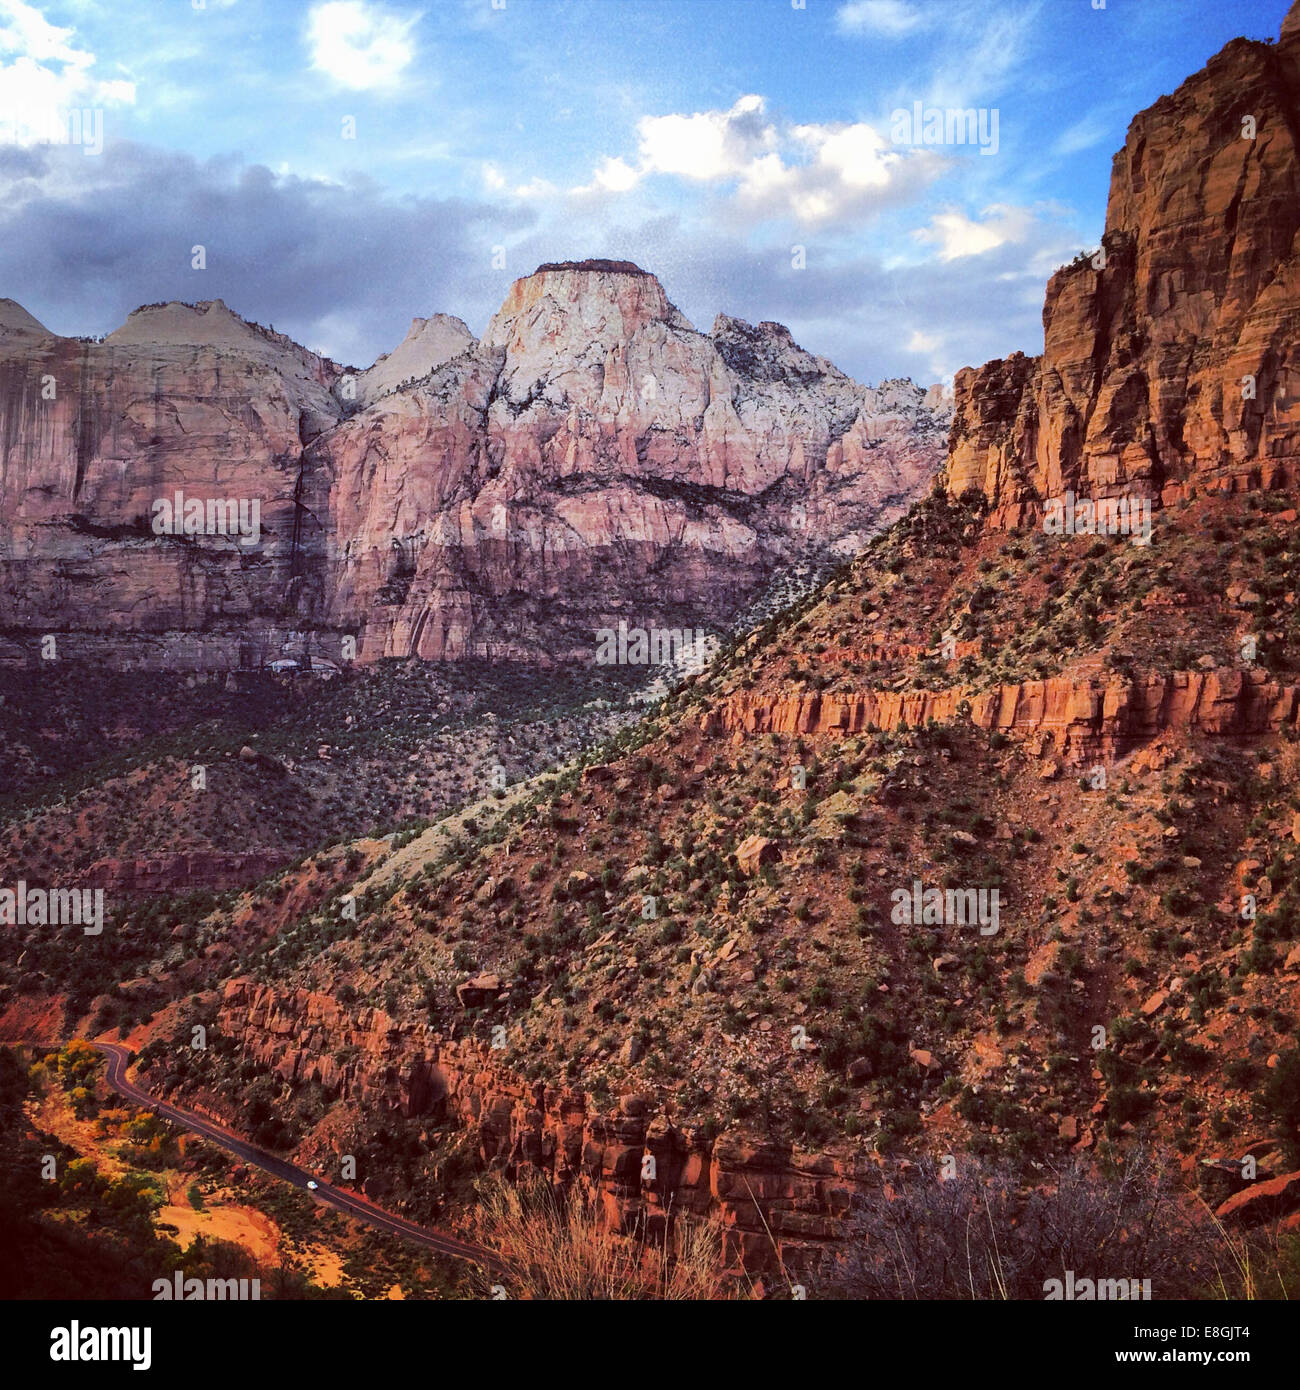 Zion National Park, Utah, America, USA - Stock Image